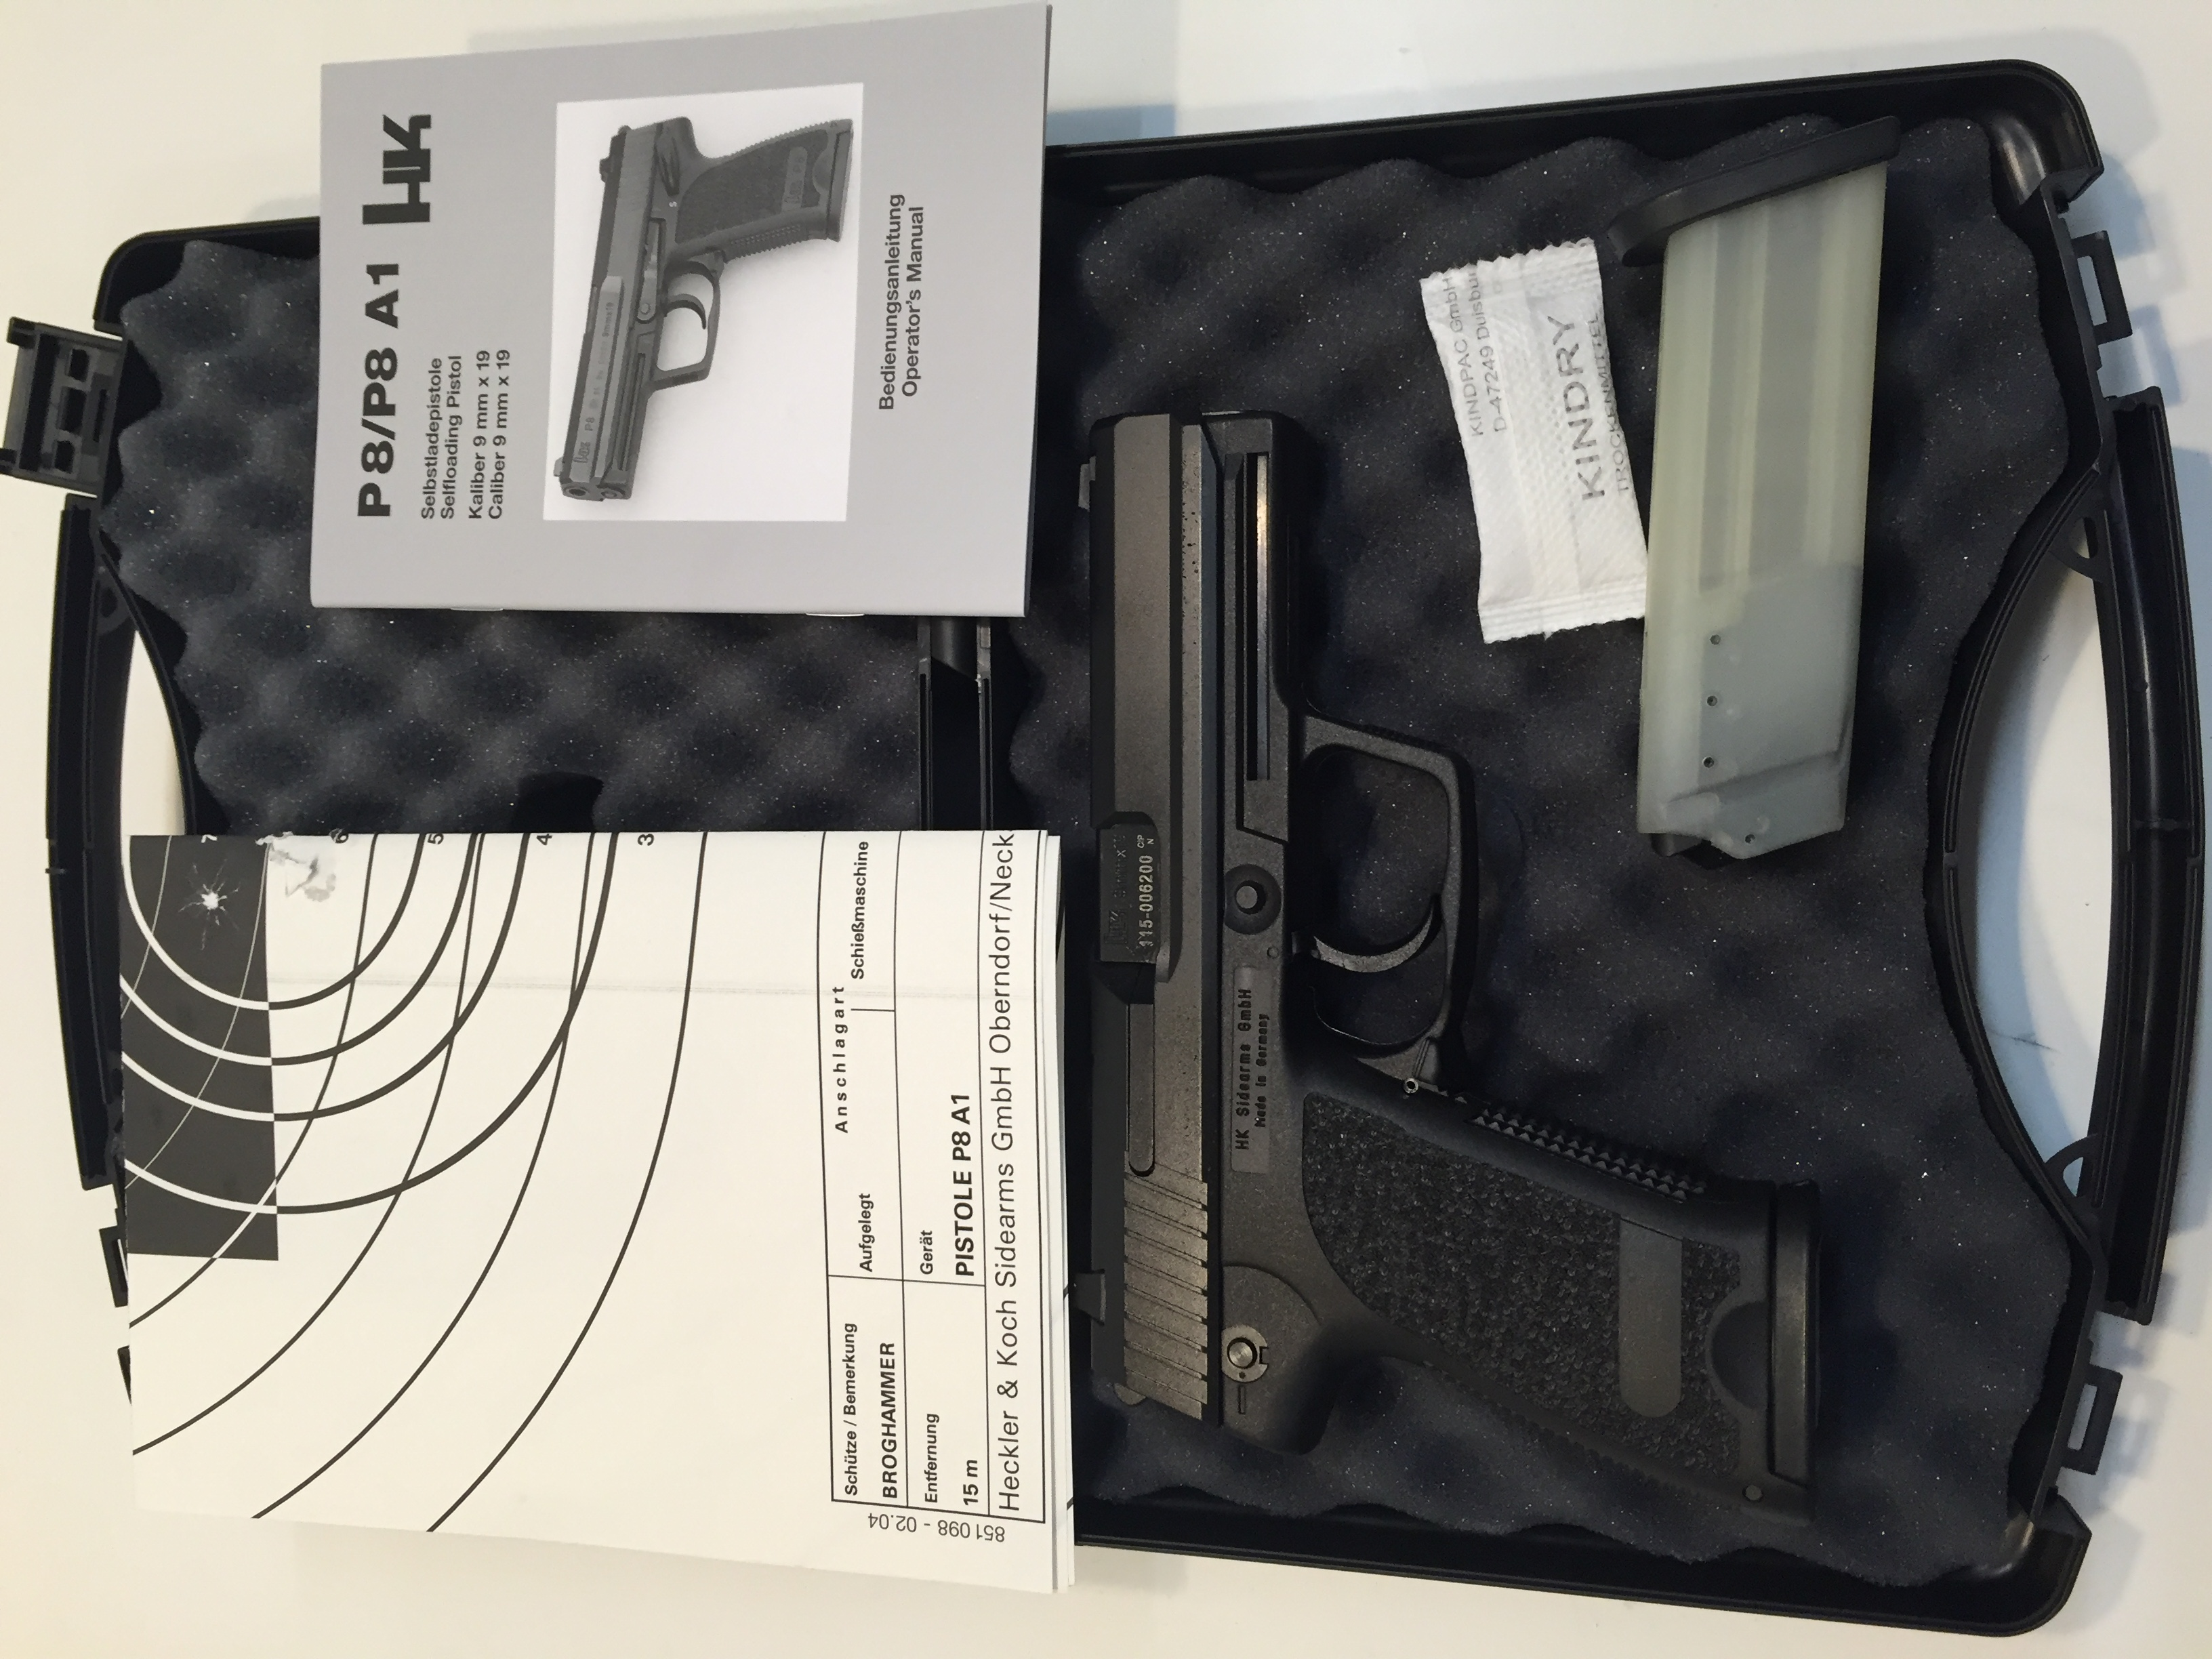 !!!!! 4th of July P8 A1 pistol give away !! Guess thread !!!!!!!-p8-a1-9.jpg